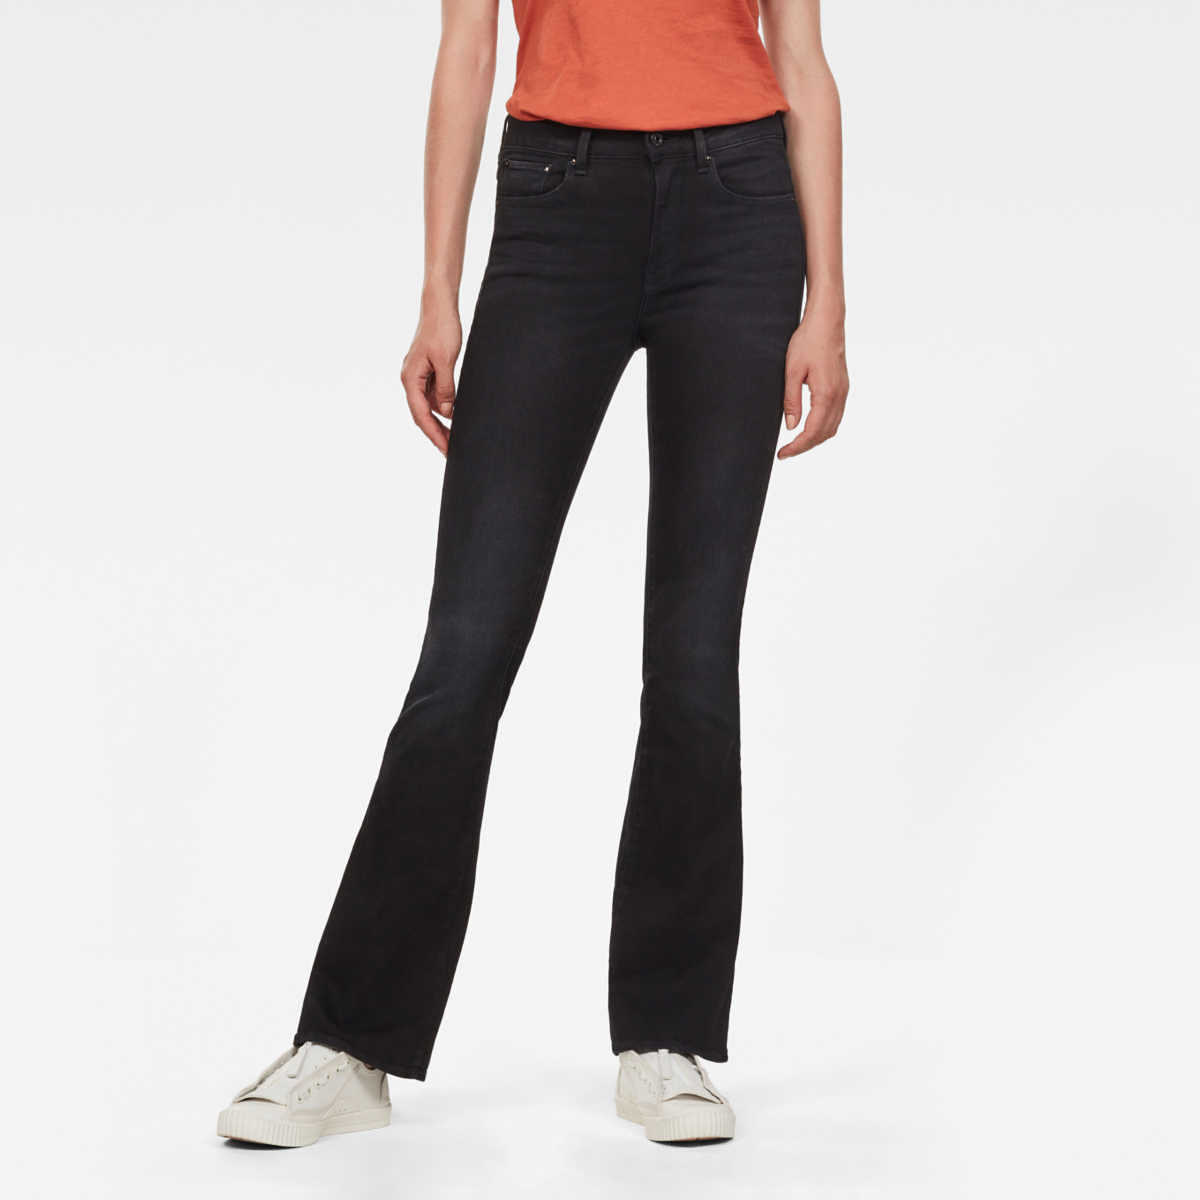 G-Star Jeans 3301 High Flare Jeans Black Female Canada - GOOFASH - Womens JEANS